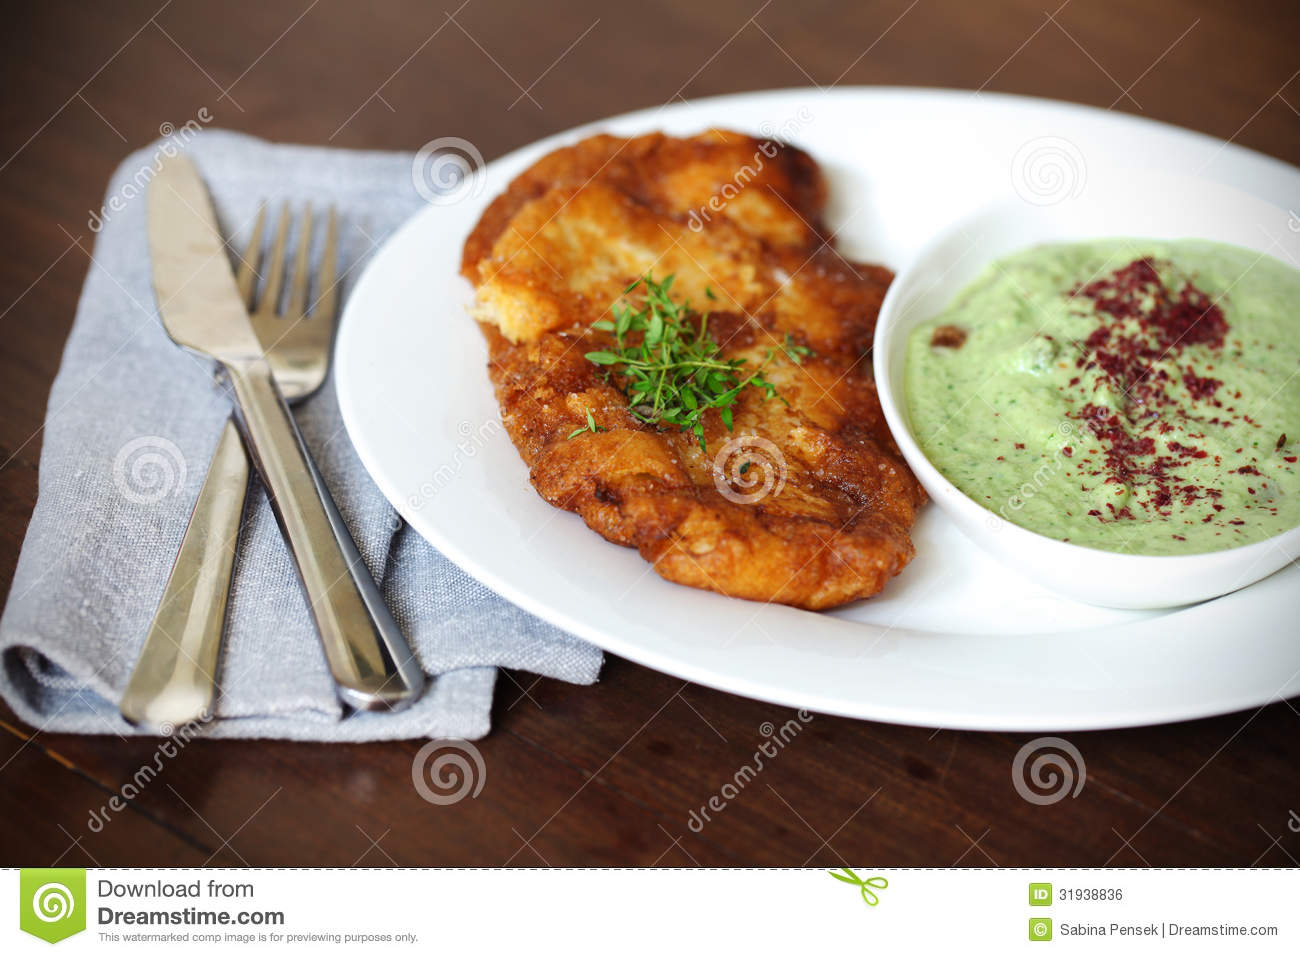 Fried fish in beer batter with cucumber yoghurt dip and for Is fried fish healthy